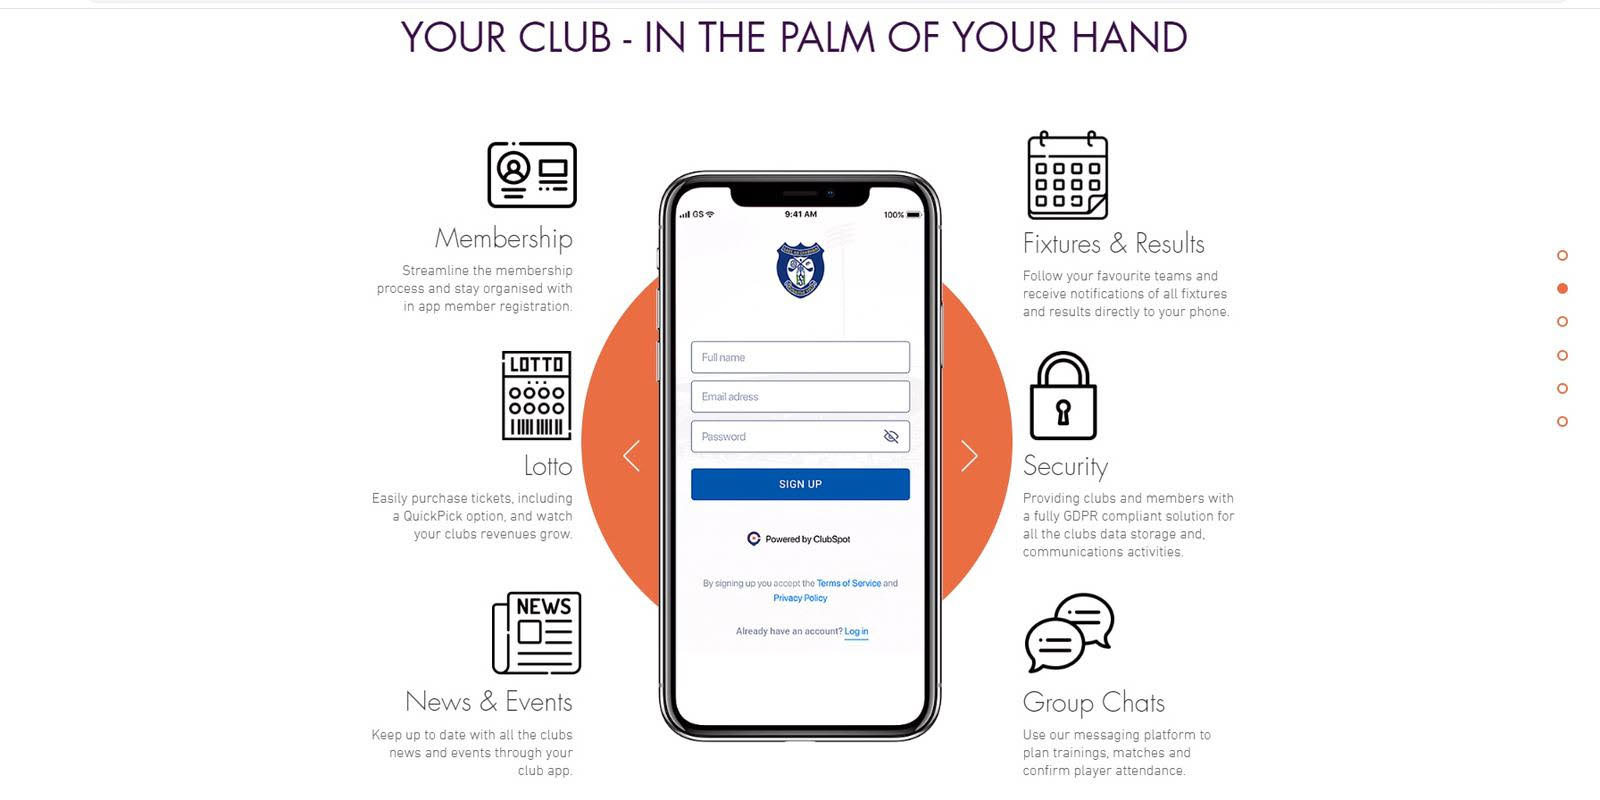 An image displaying some of the features on the ClubSpot app, which includes news and events for members and lotteries, as well as a calendar of upcoming events.